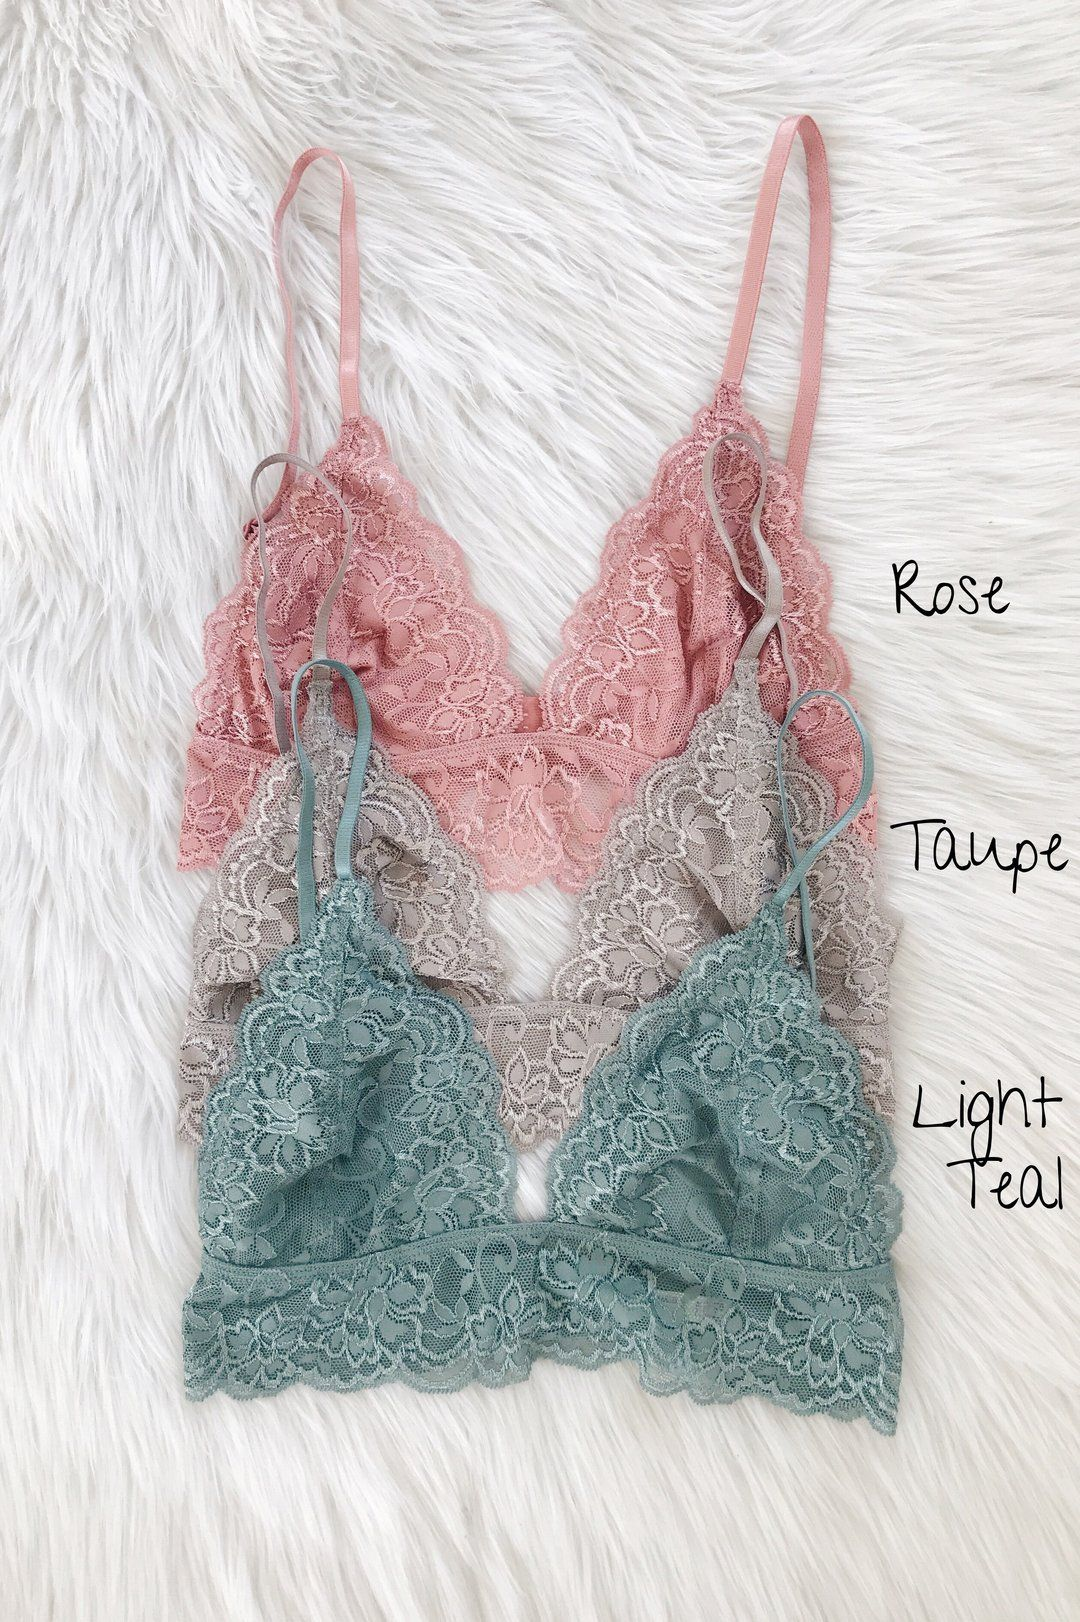 faa1430d04d24 95% Nylon 5% Spandex Gorgeous lace triangle bralette. Lined with soft mesh.  Semi sheer with adjustable straps make fit more customized.